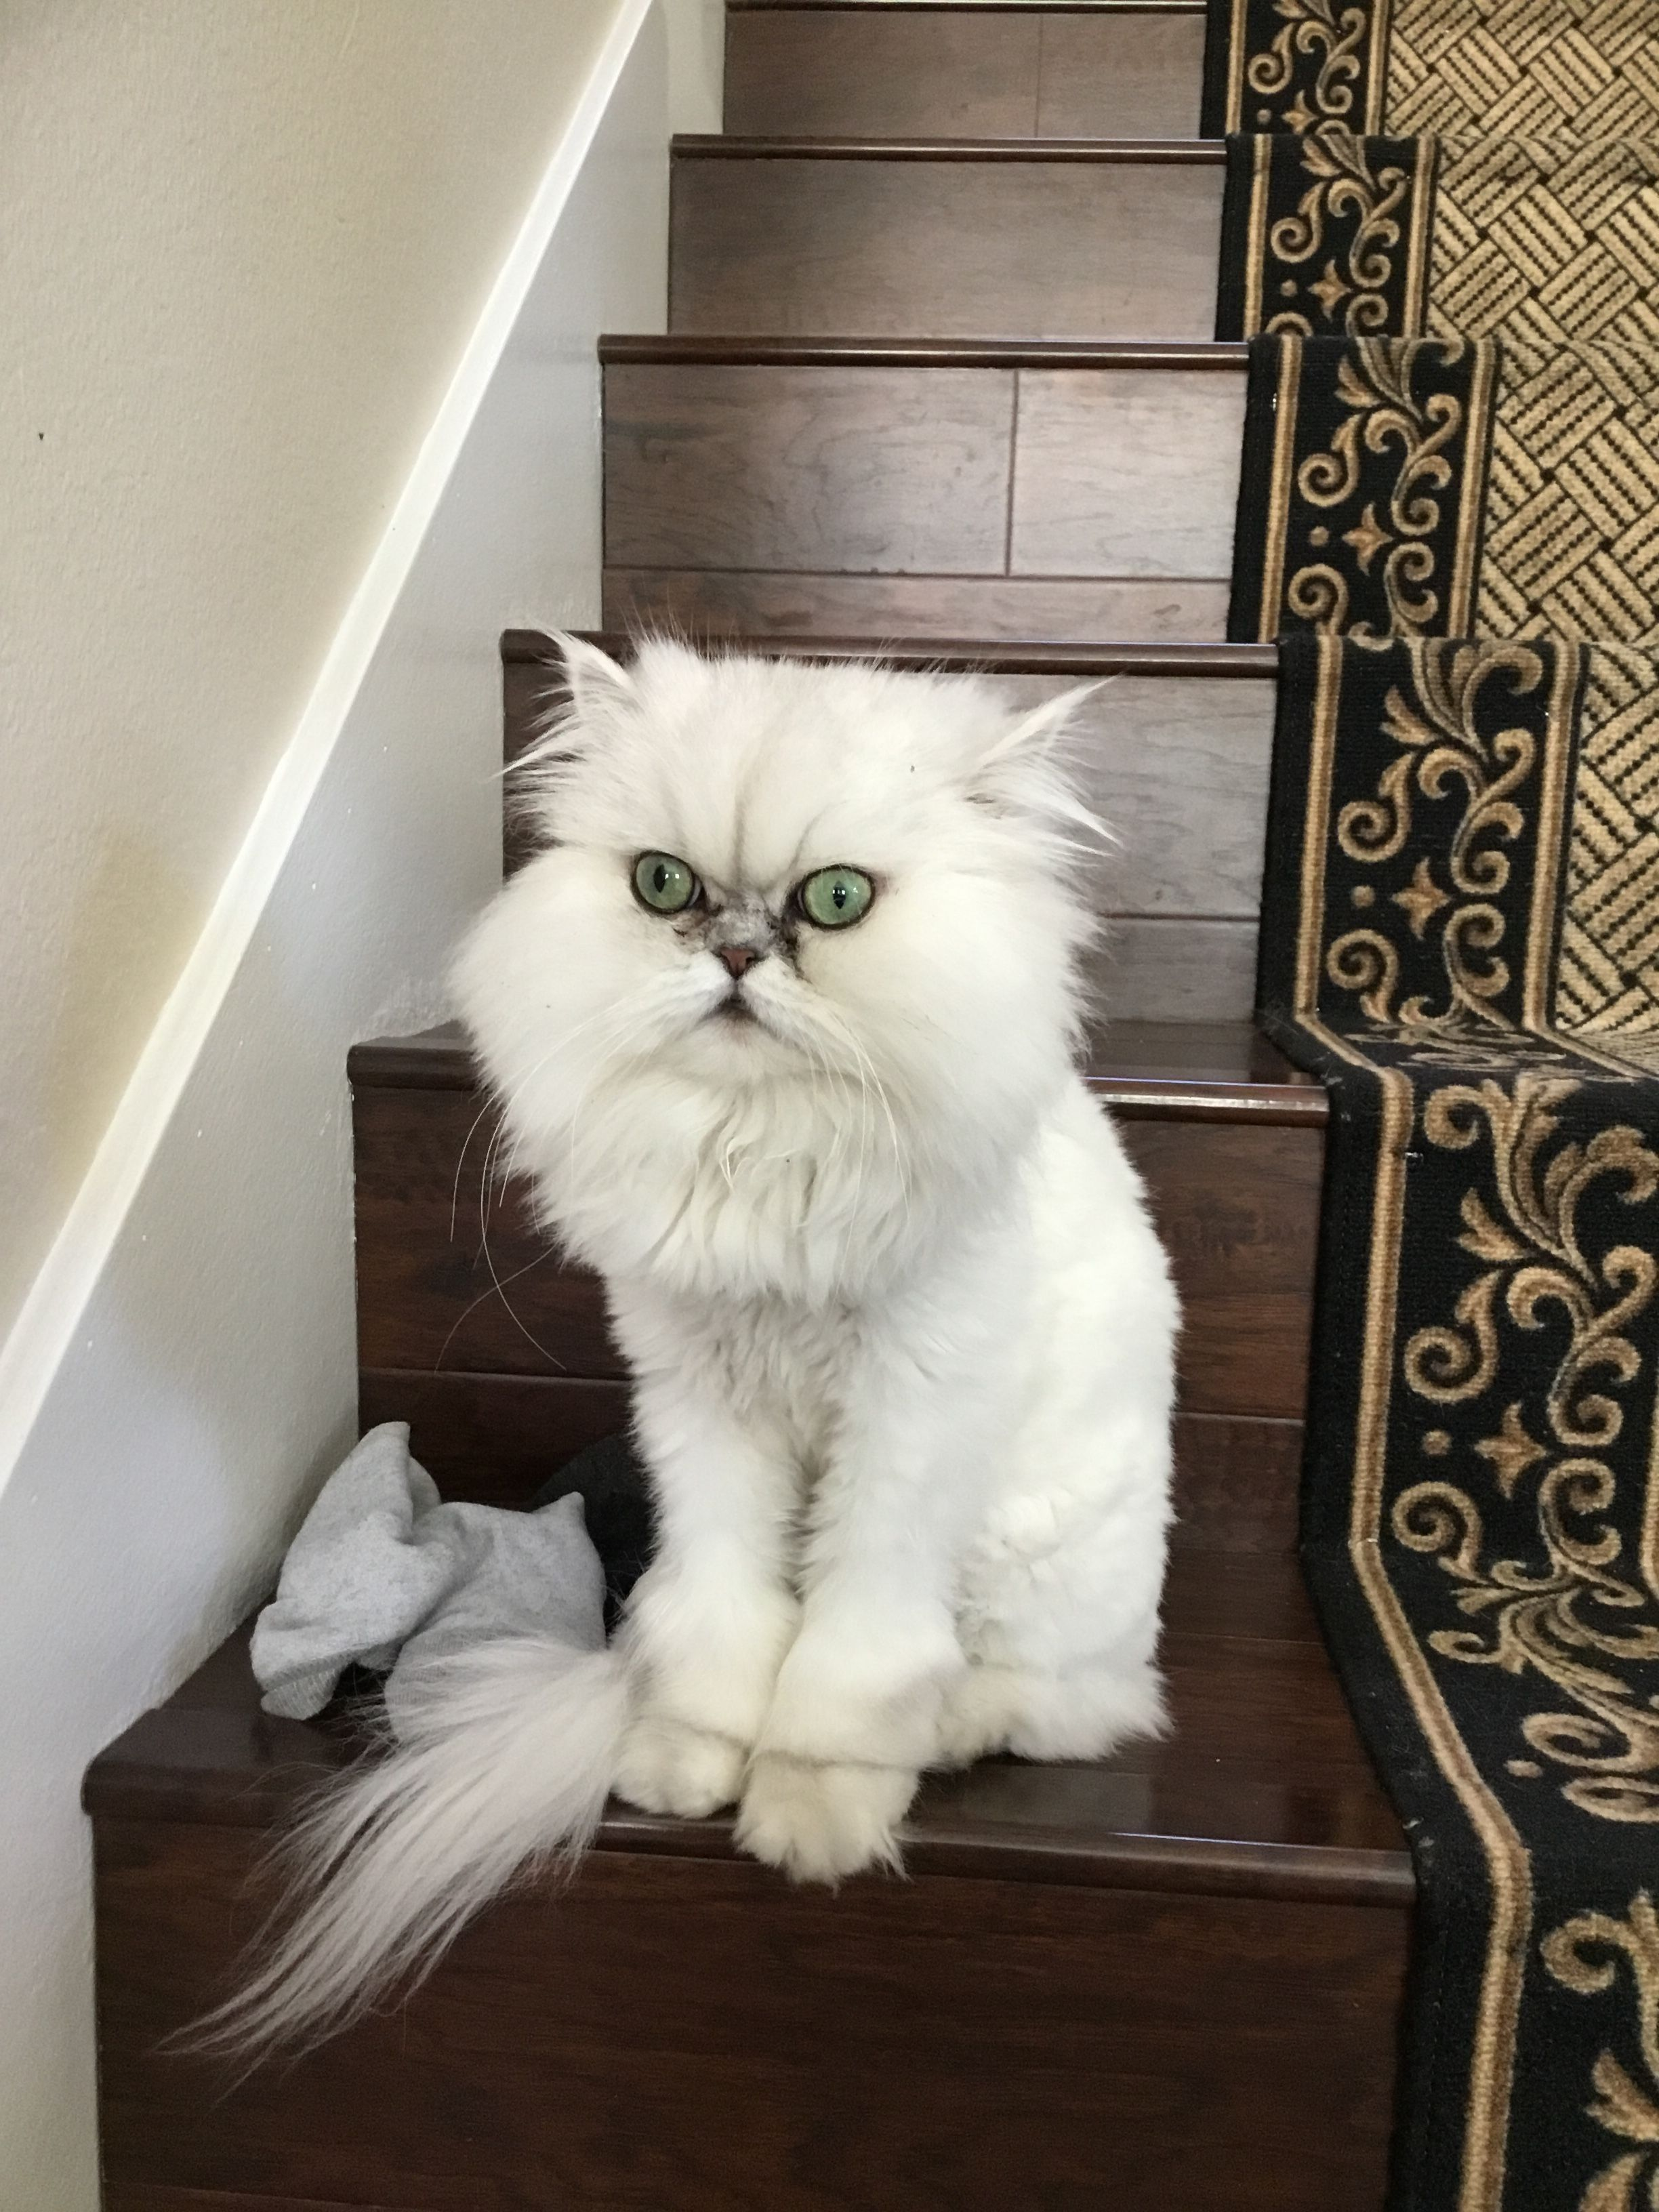 Beautiful Persian Cat Images Hd Persian cat, Cat haircut